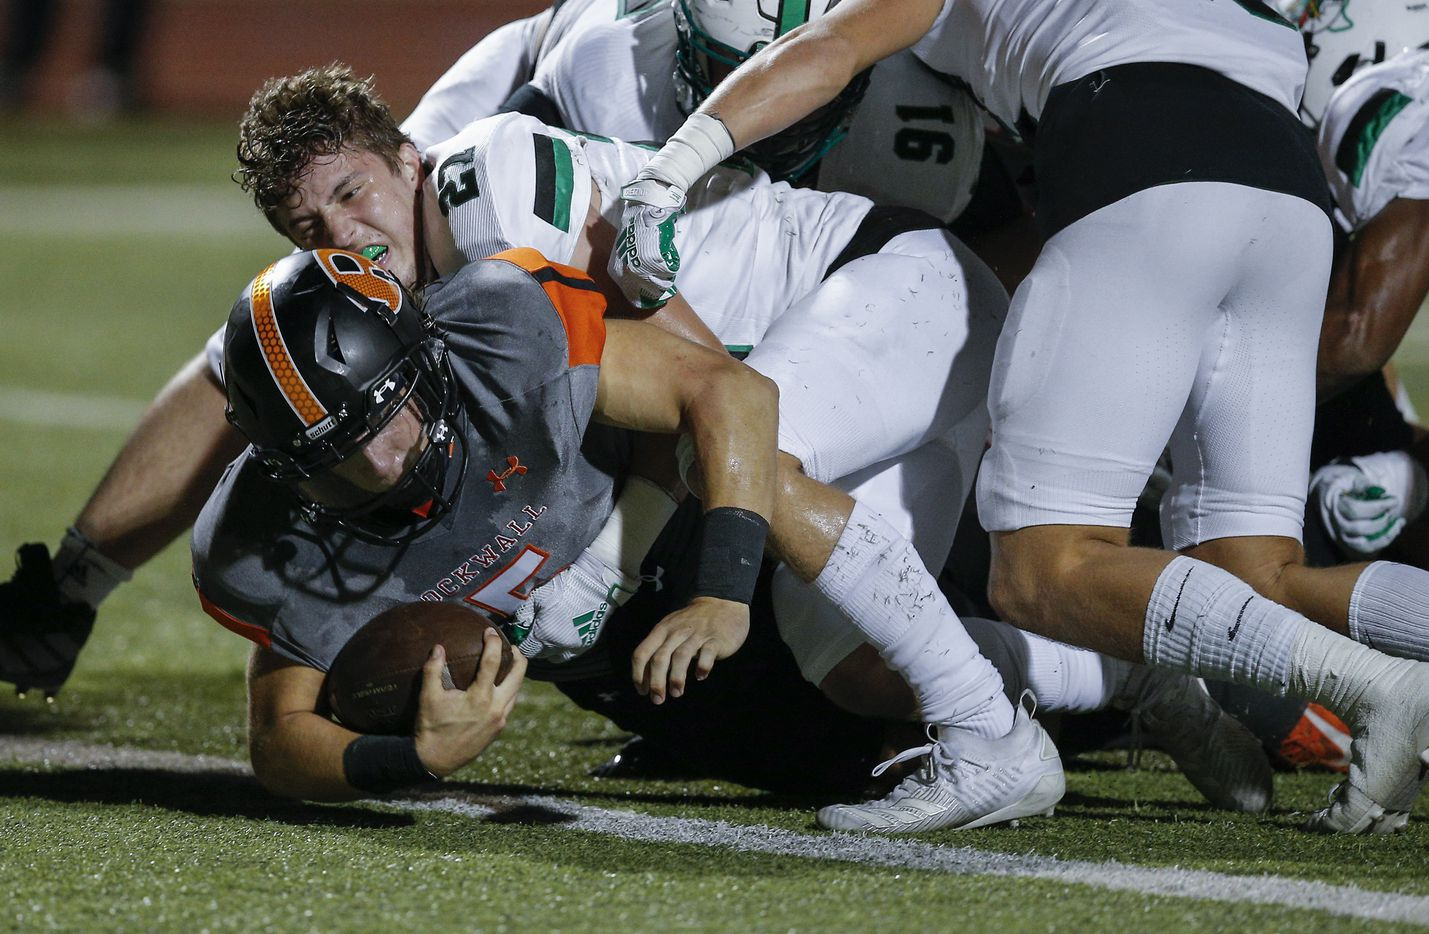 Rockwall sophomore quarterback Lake Bennett (5) scores a touchdown as Southlake Carroll senior defensive back Mason Grawe (27) defends during the first half of a high school football game at Wilkerson-Sanders Stadium in Rockwall, Thursday, October 8, 2020. (Brandon Wade/Special Contributor)